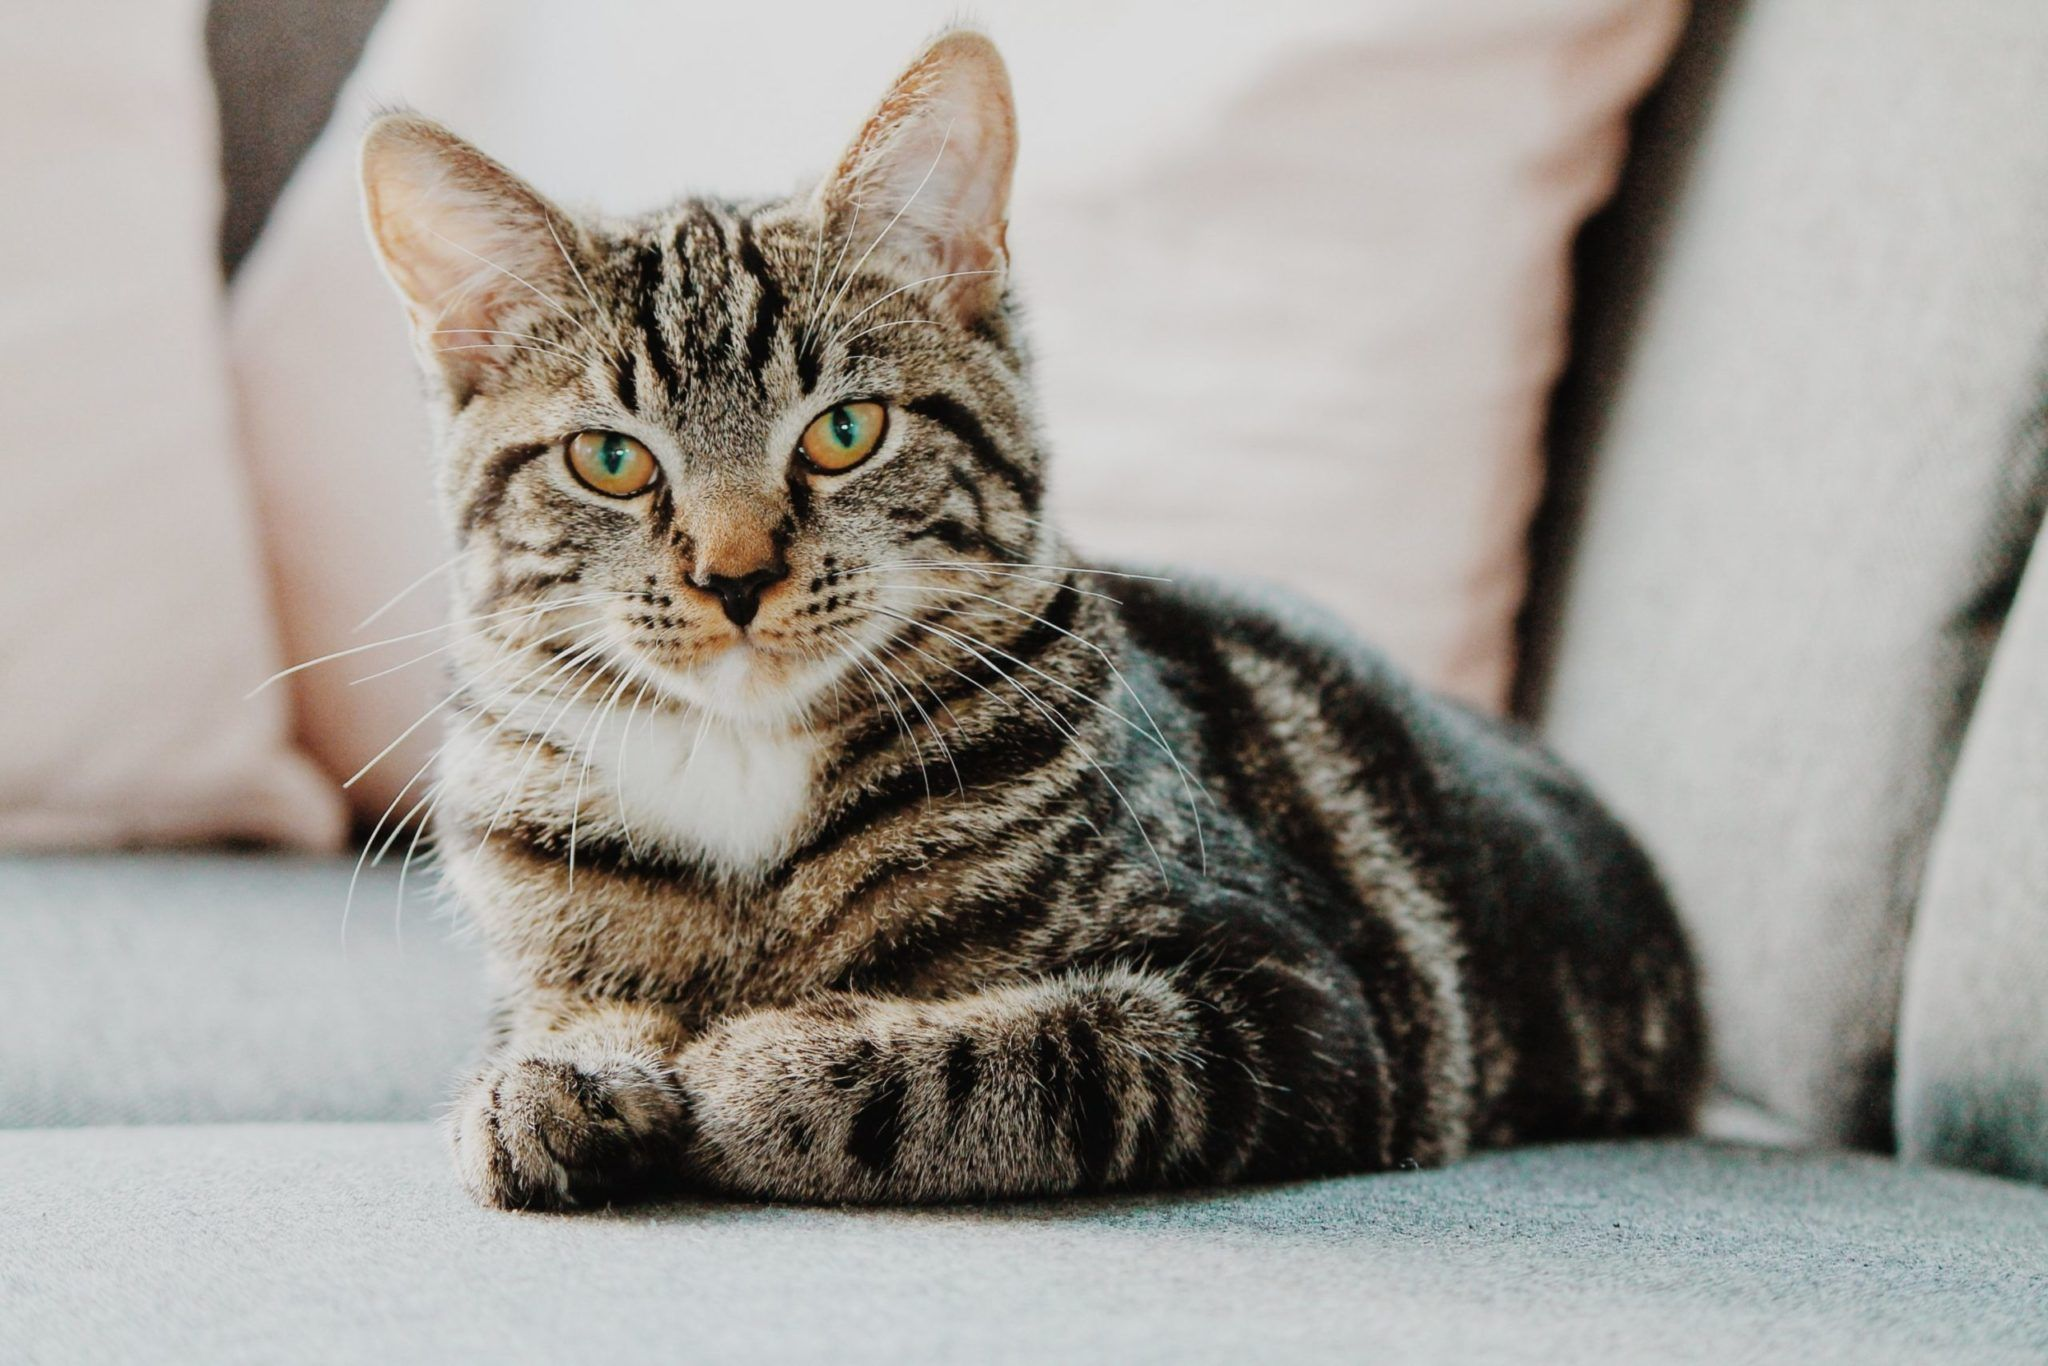 At What Age Are Cats Considered Full Grown Cat Ilovecats Cutecats Lovely Cute In 2020 Tabby Cat Grey Tabby Cats Cat Pics